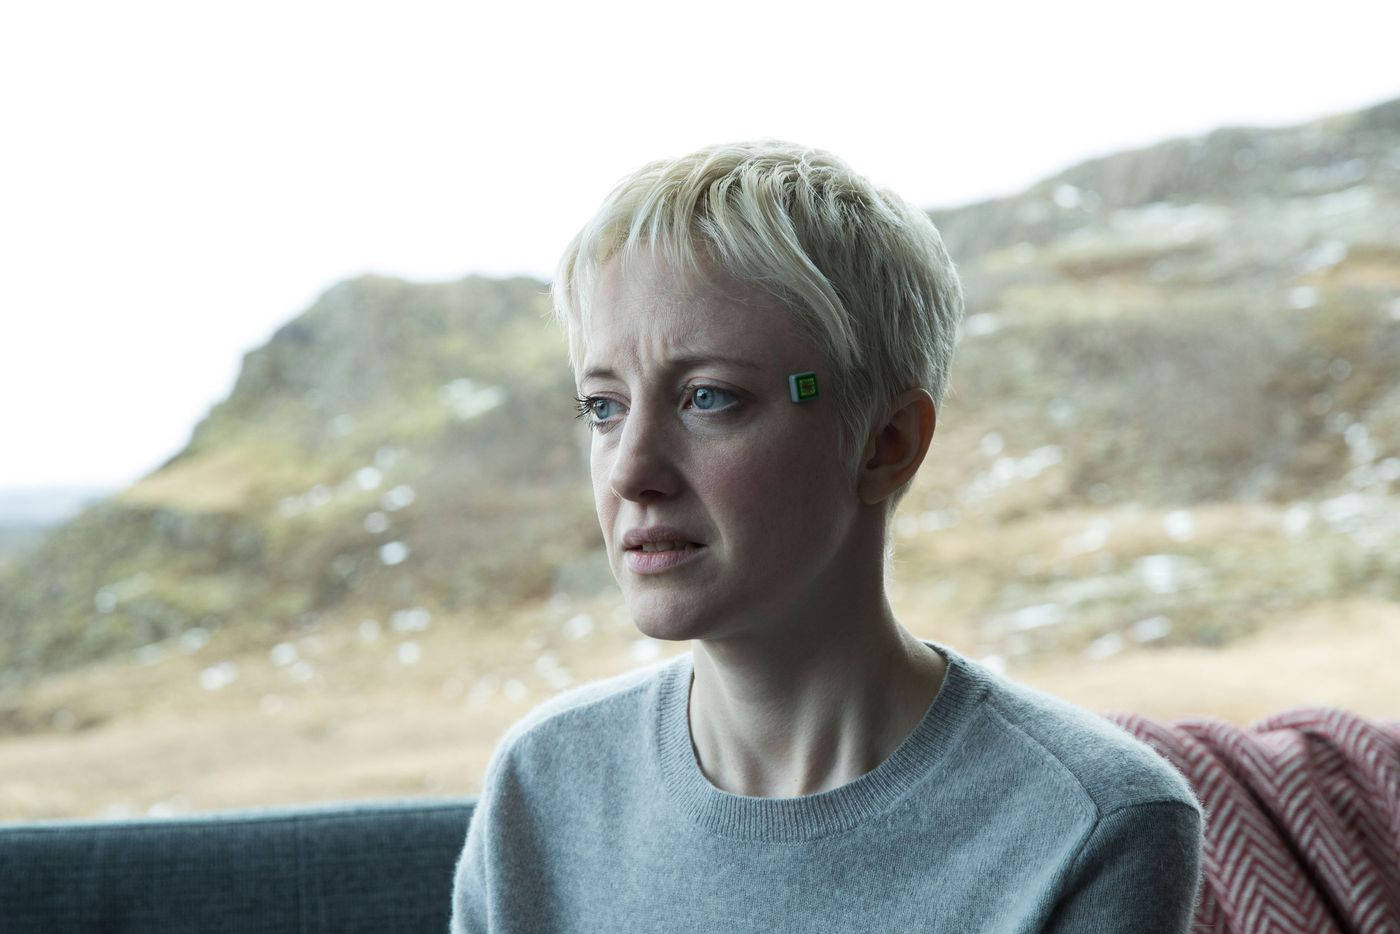 Best 'Black Mirror' Episodes, Ranked